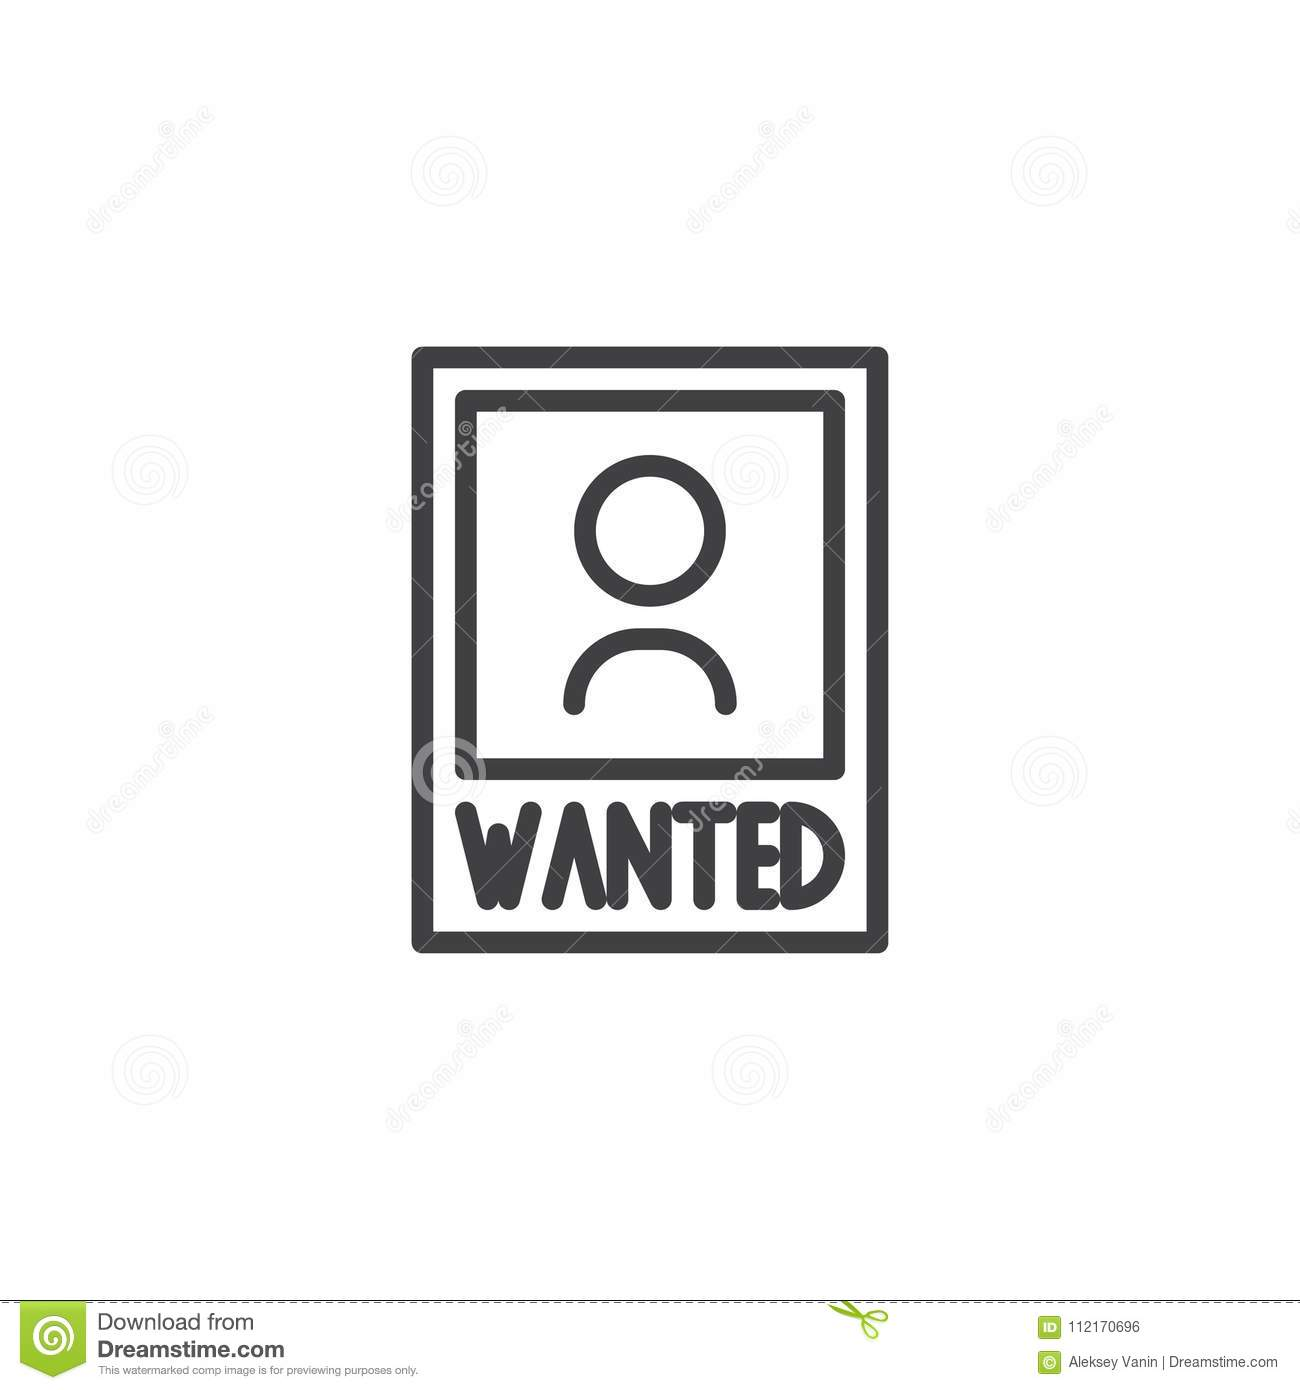 Wanted poster outline icon stock vector. Illustration of poster ...